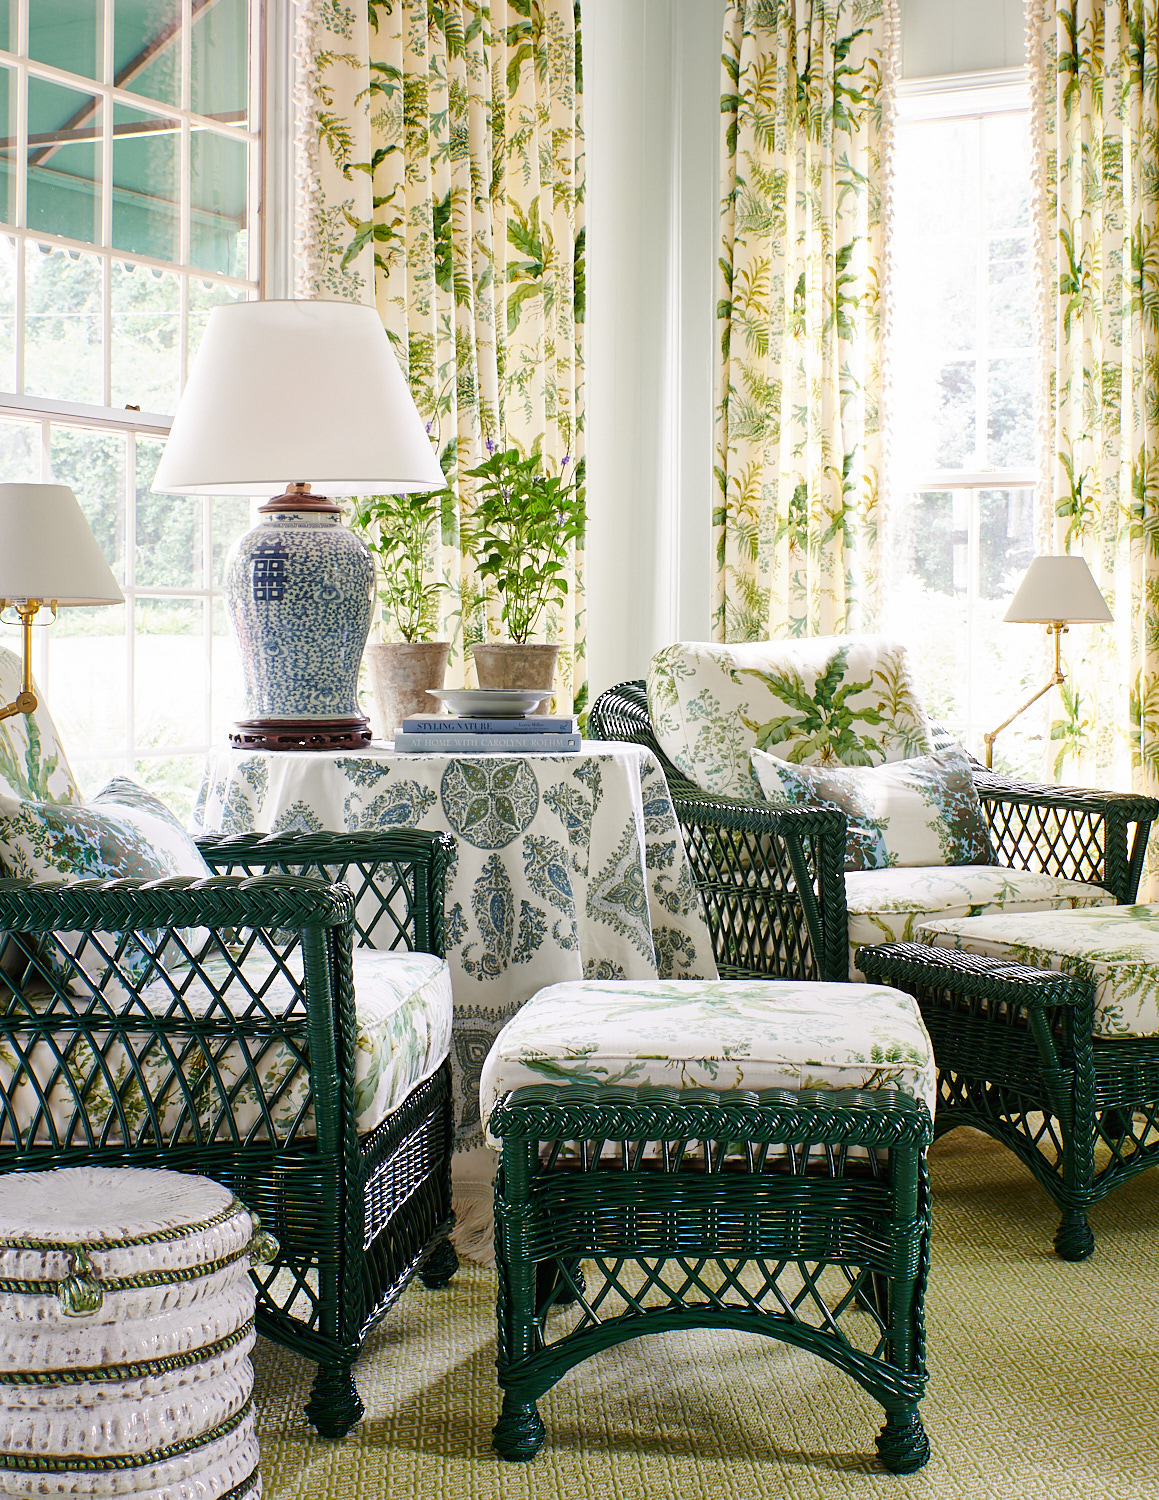 Floral drapery, wicker chairs and ottomans with matching floral cushions